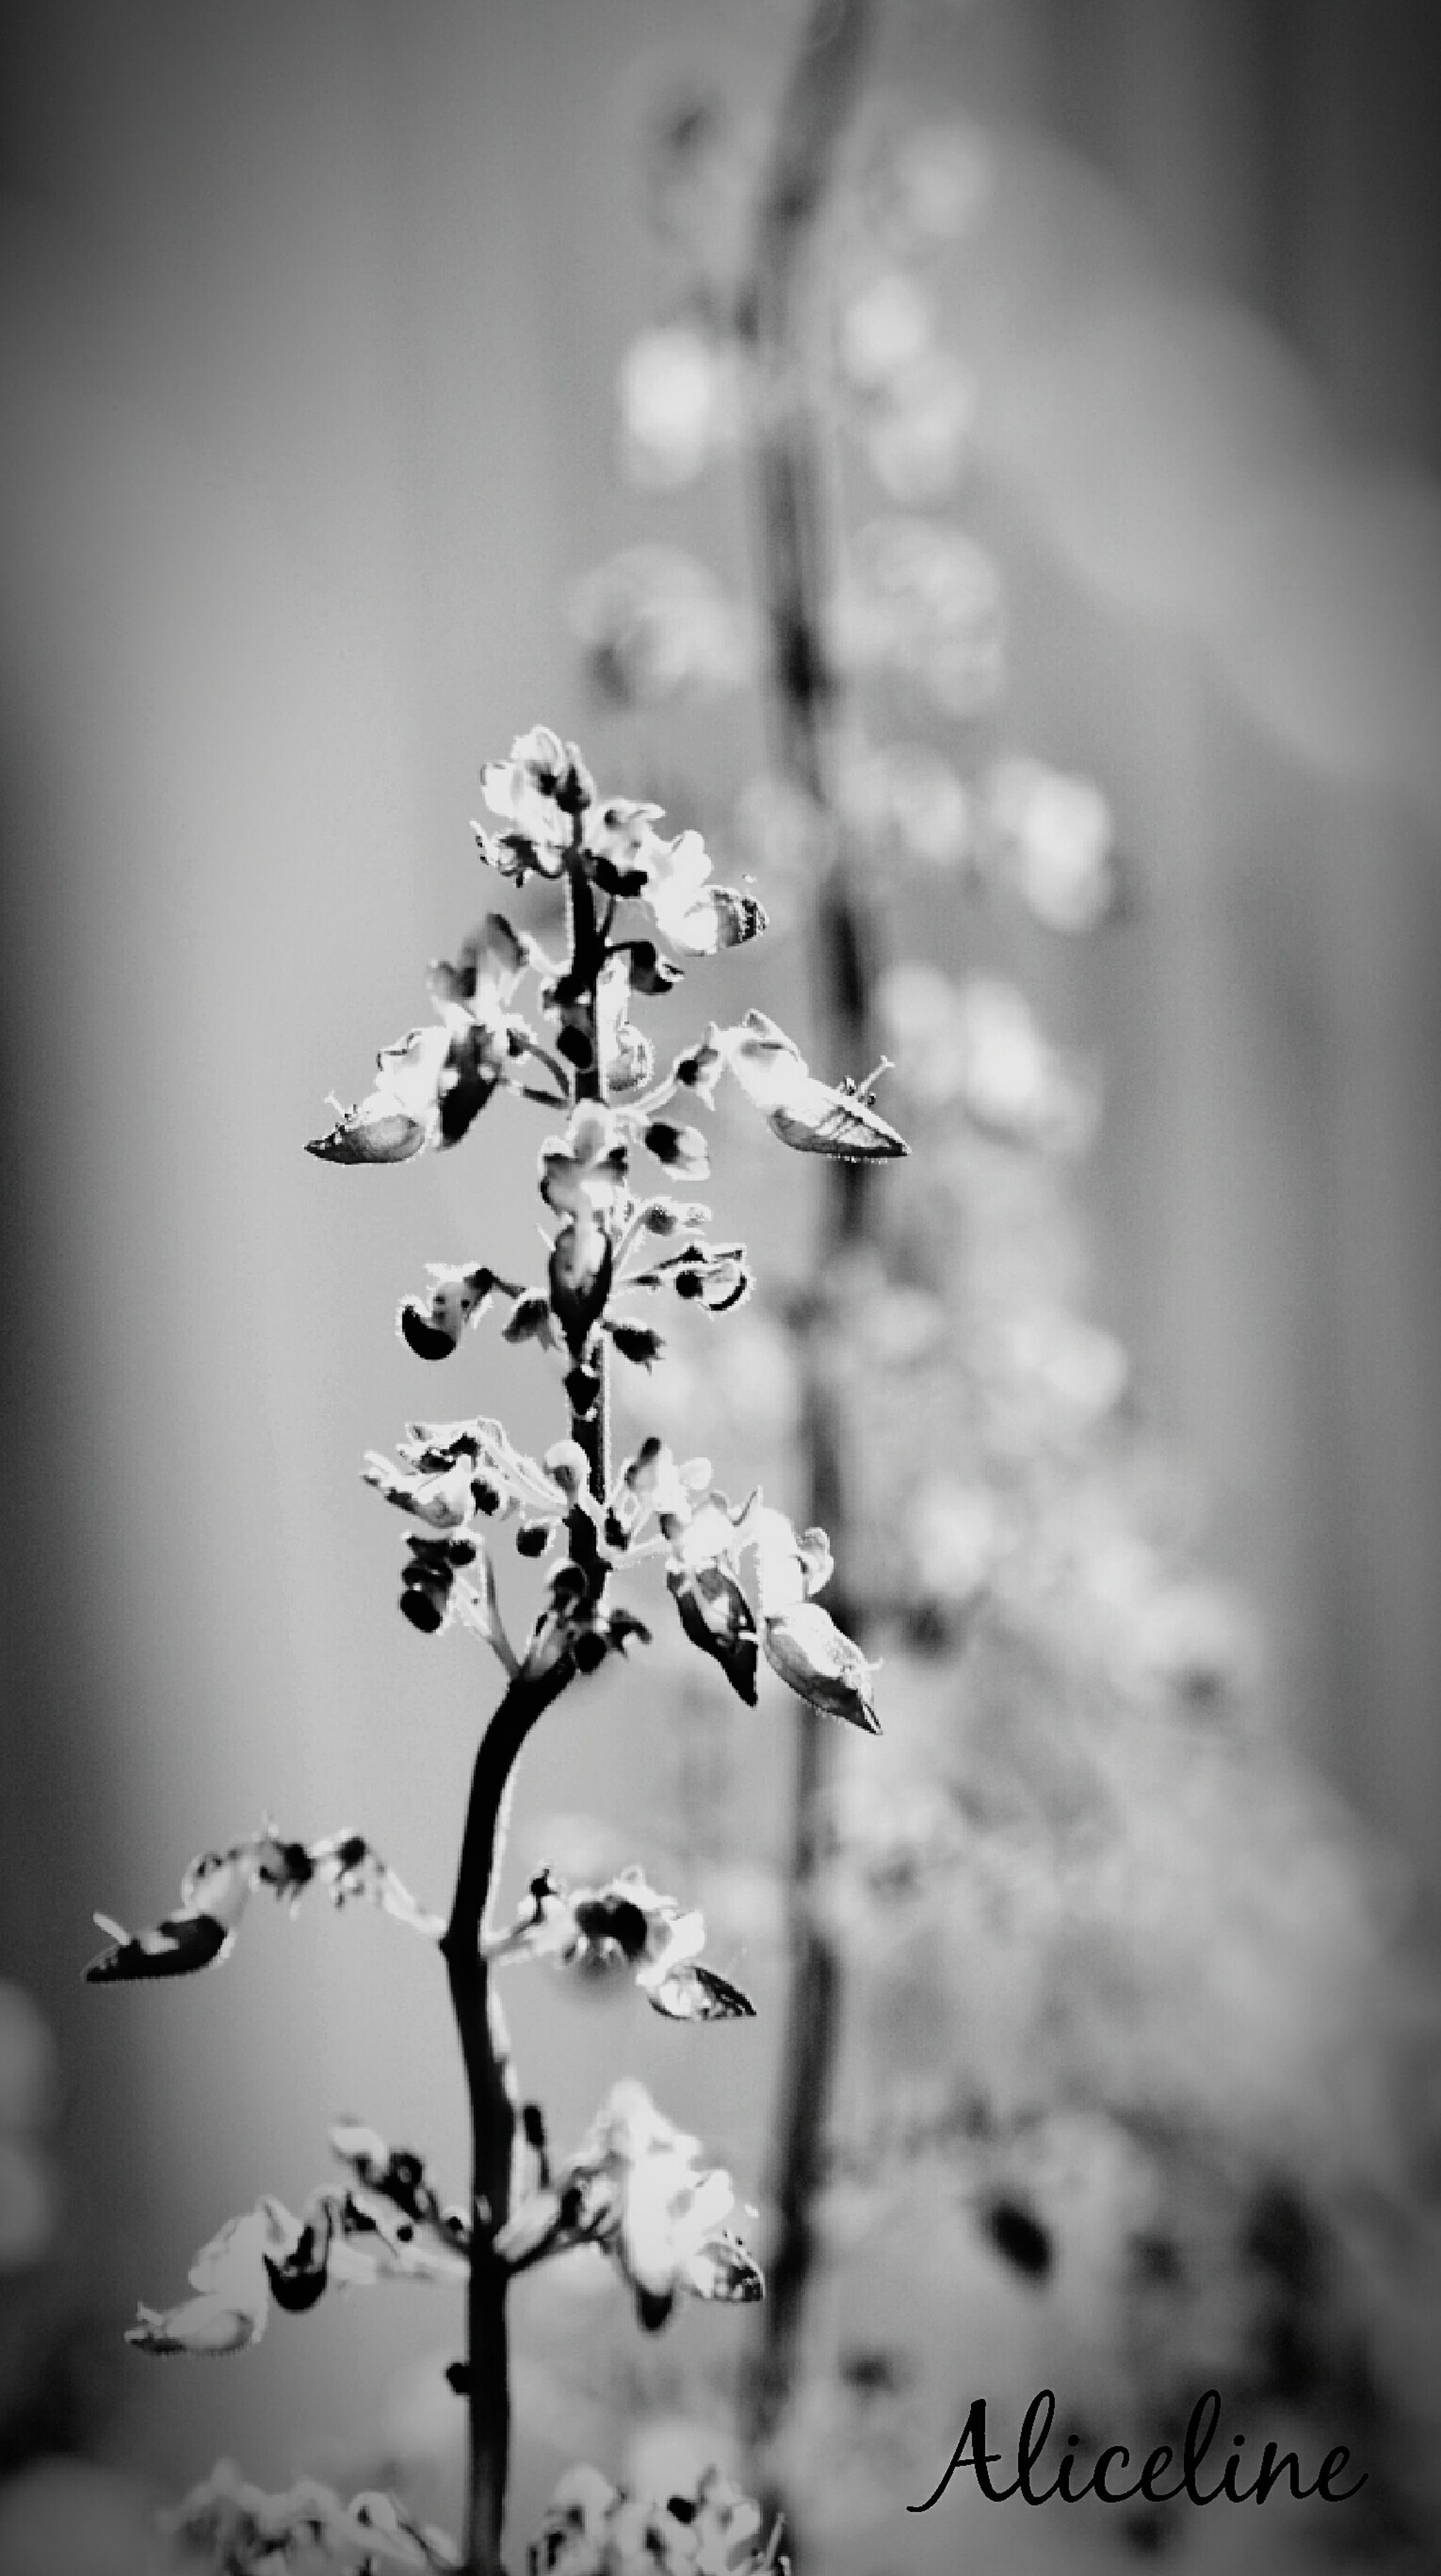 growth, no people, beauty in nature, nature, day, focus on foreground, close-up, fragility, plant, freshness, flower, outdoors, tree, flower head